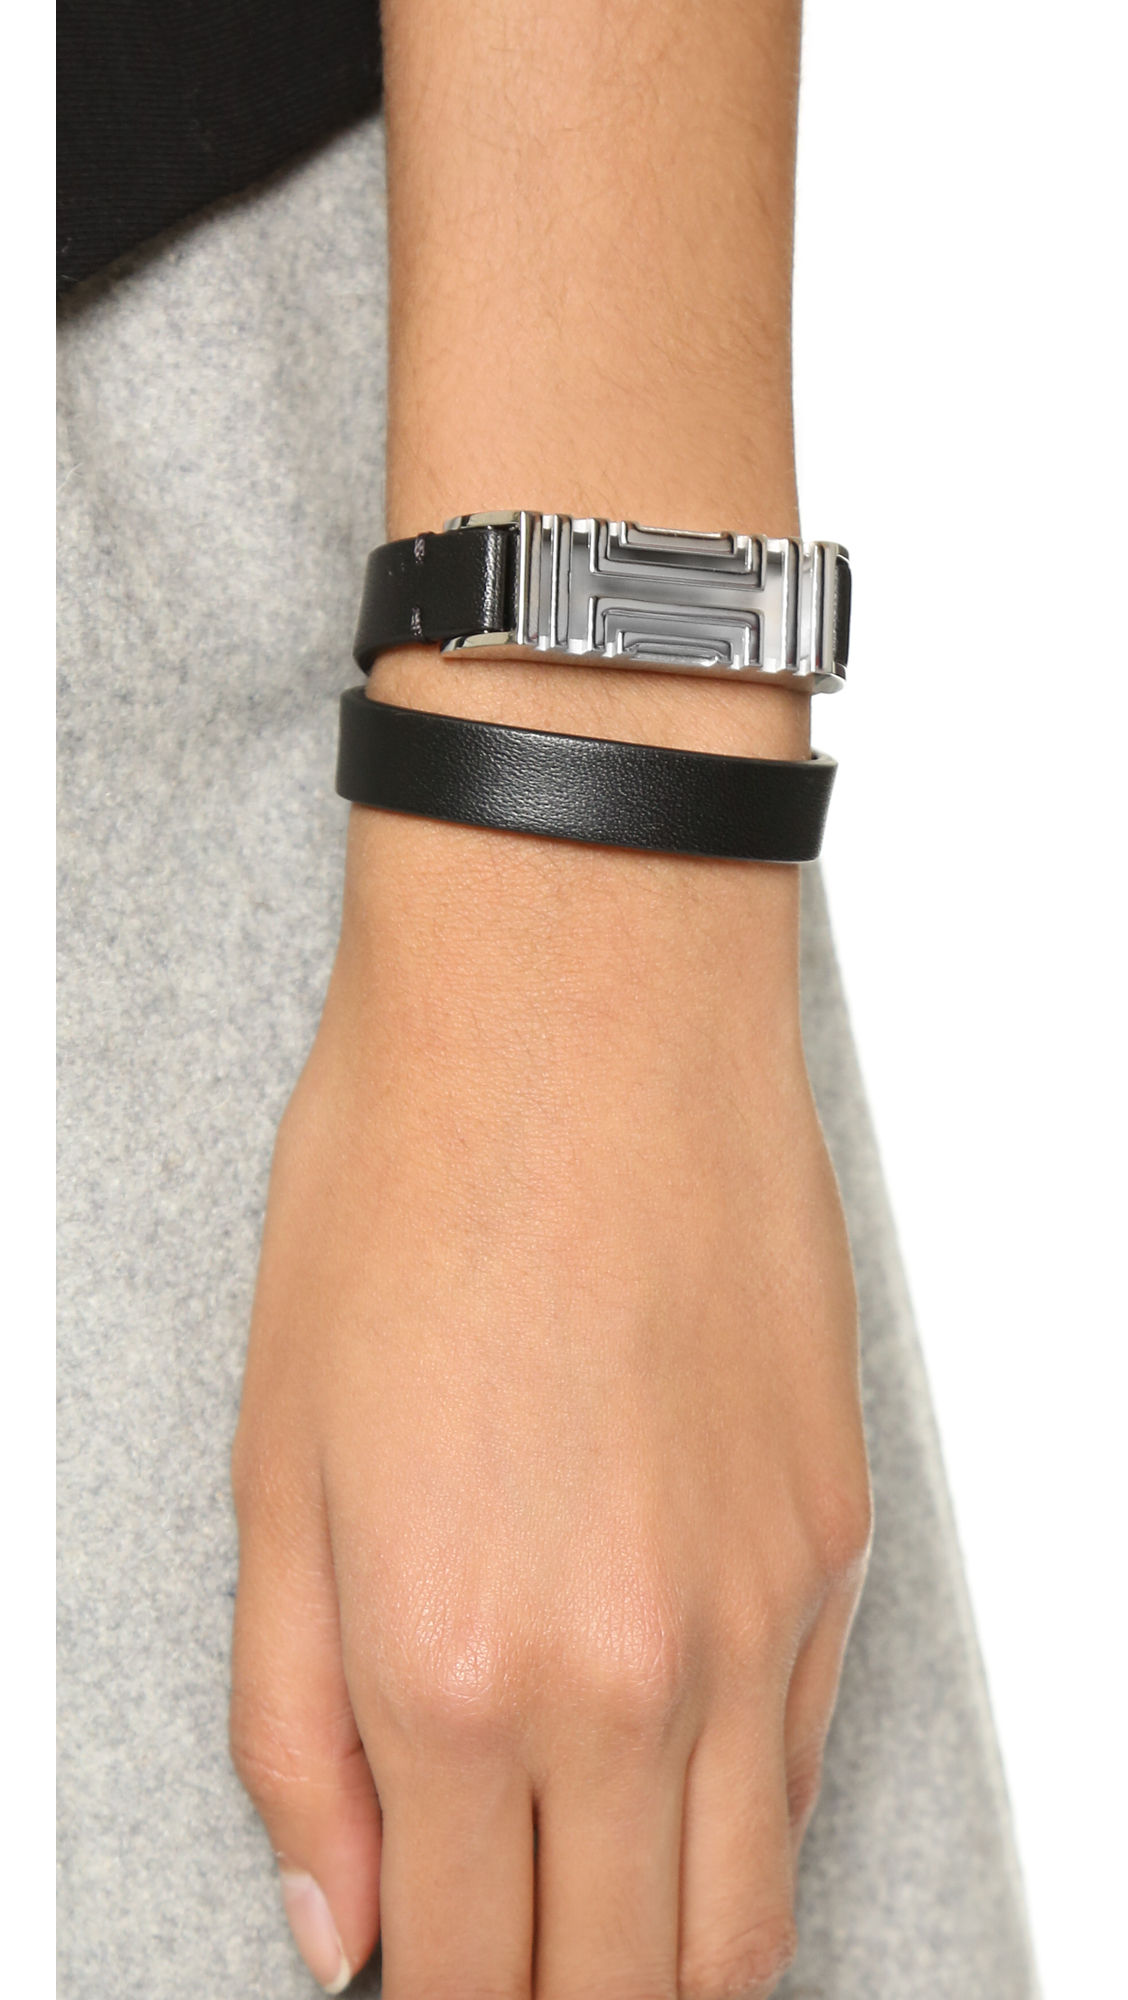 27b550f43ce Tory Burch For Fitbit Leather Bracelet Black Silver In